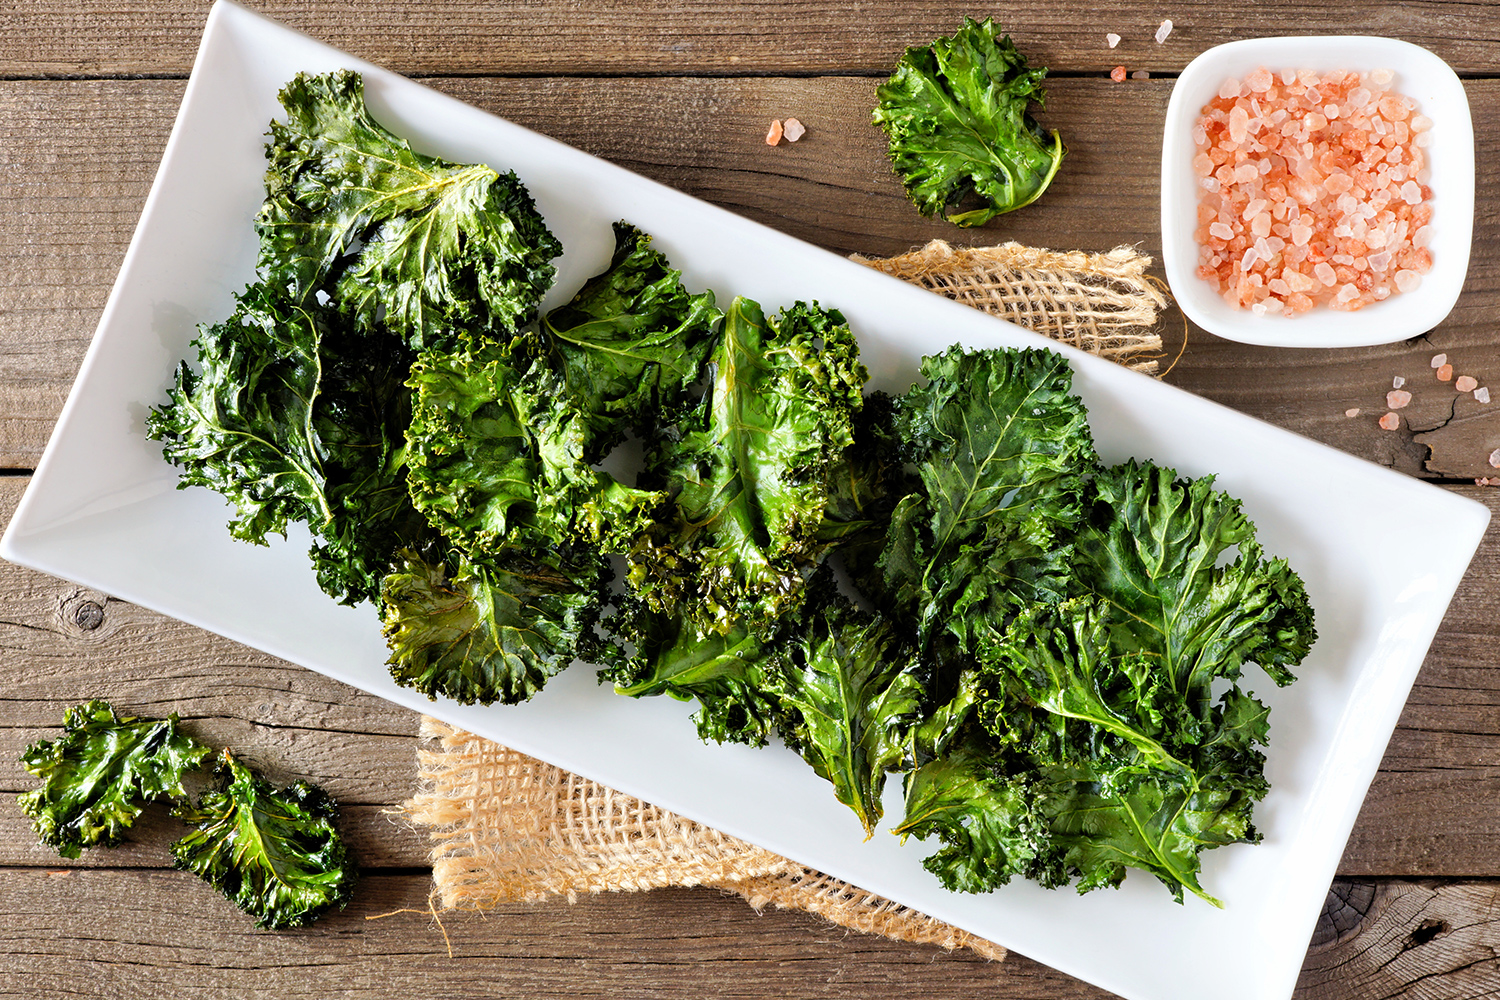 How to Make Kale Taste Better